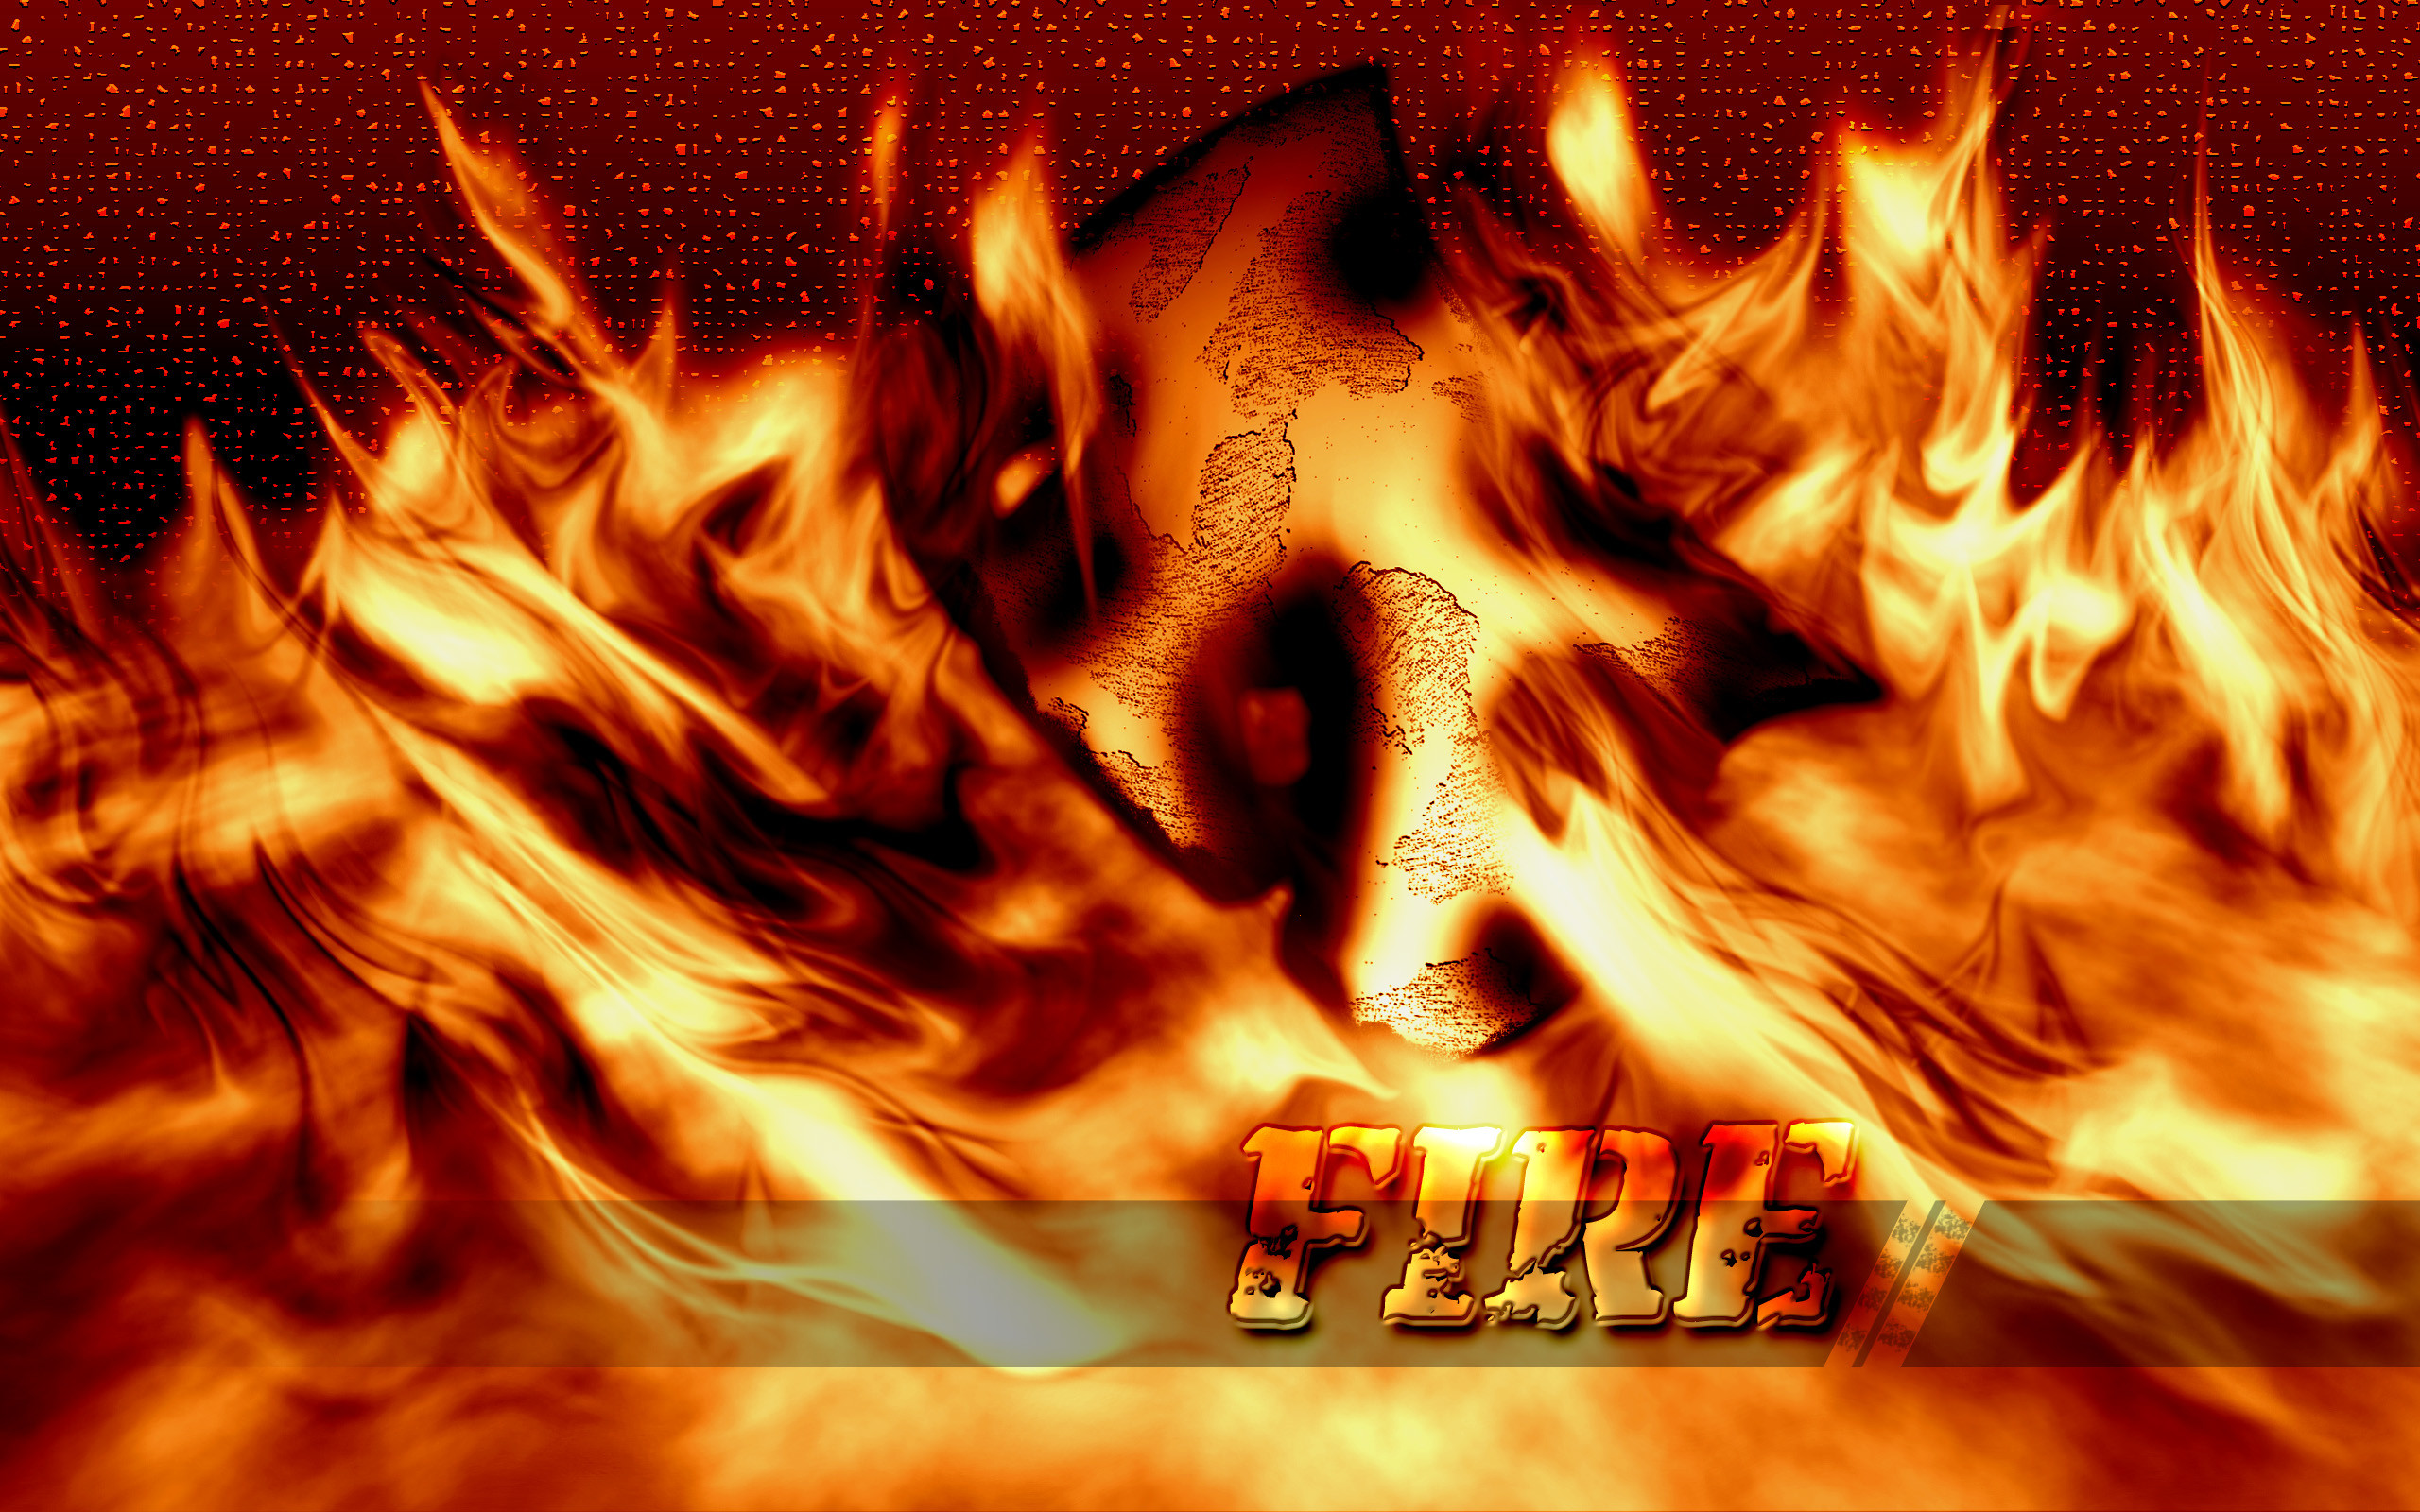 Skull fire wallpaper 61 images - Phone wallpapers fire ...